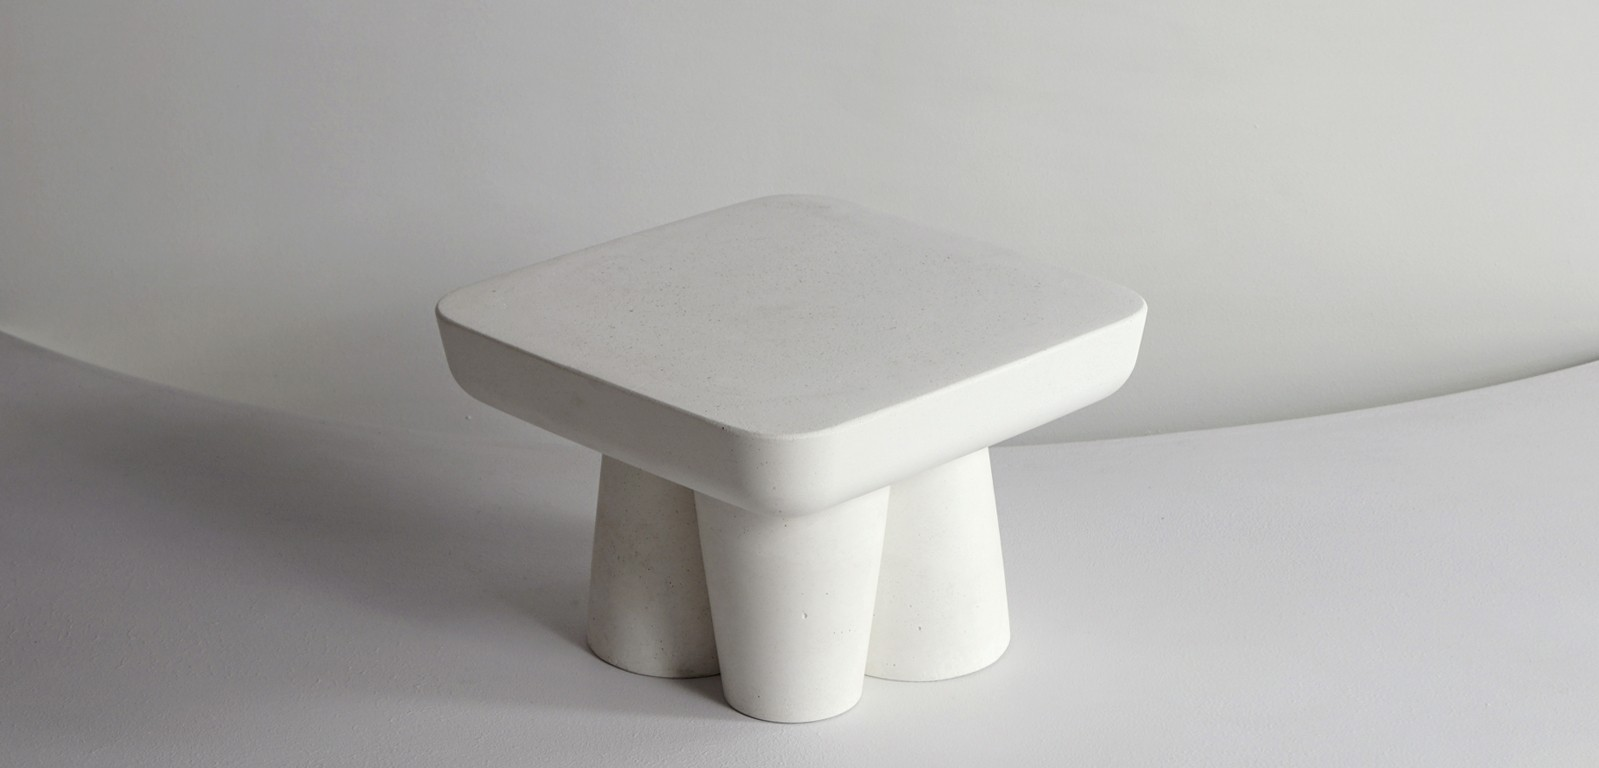 HOMME-sculptural-centerpiece-stand-platter-tabletop-white-luxury-alentes-concrete-1